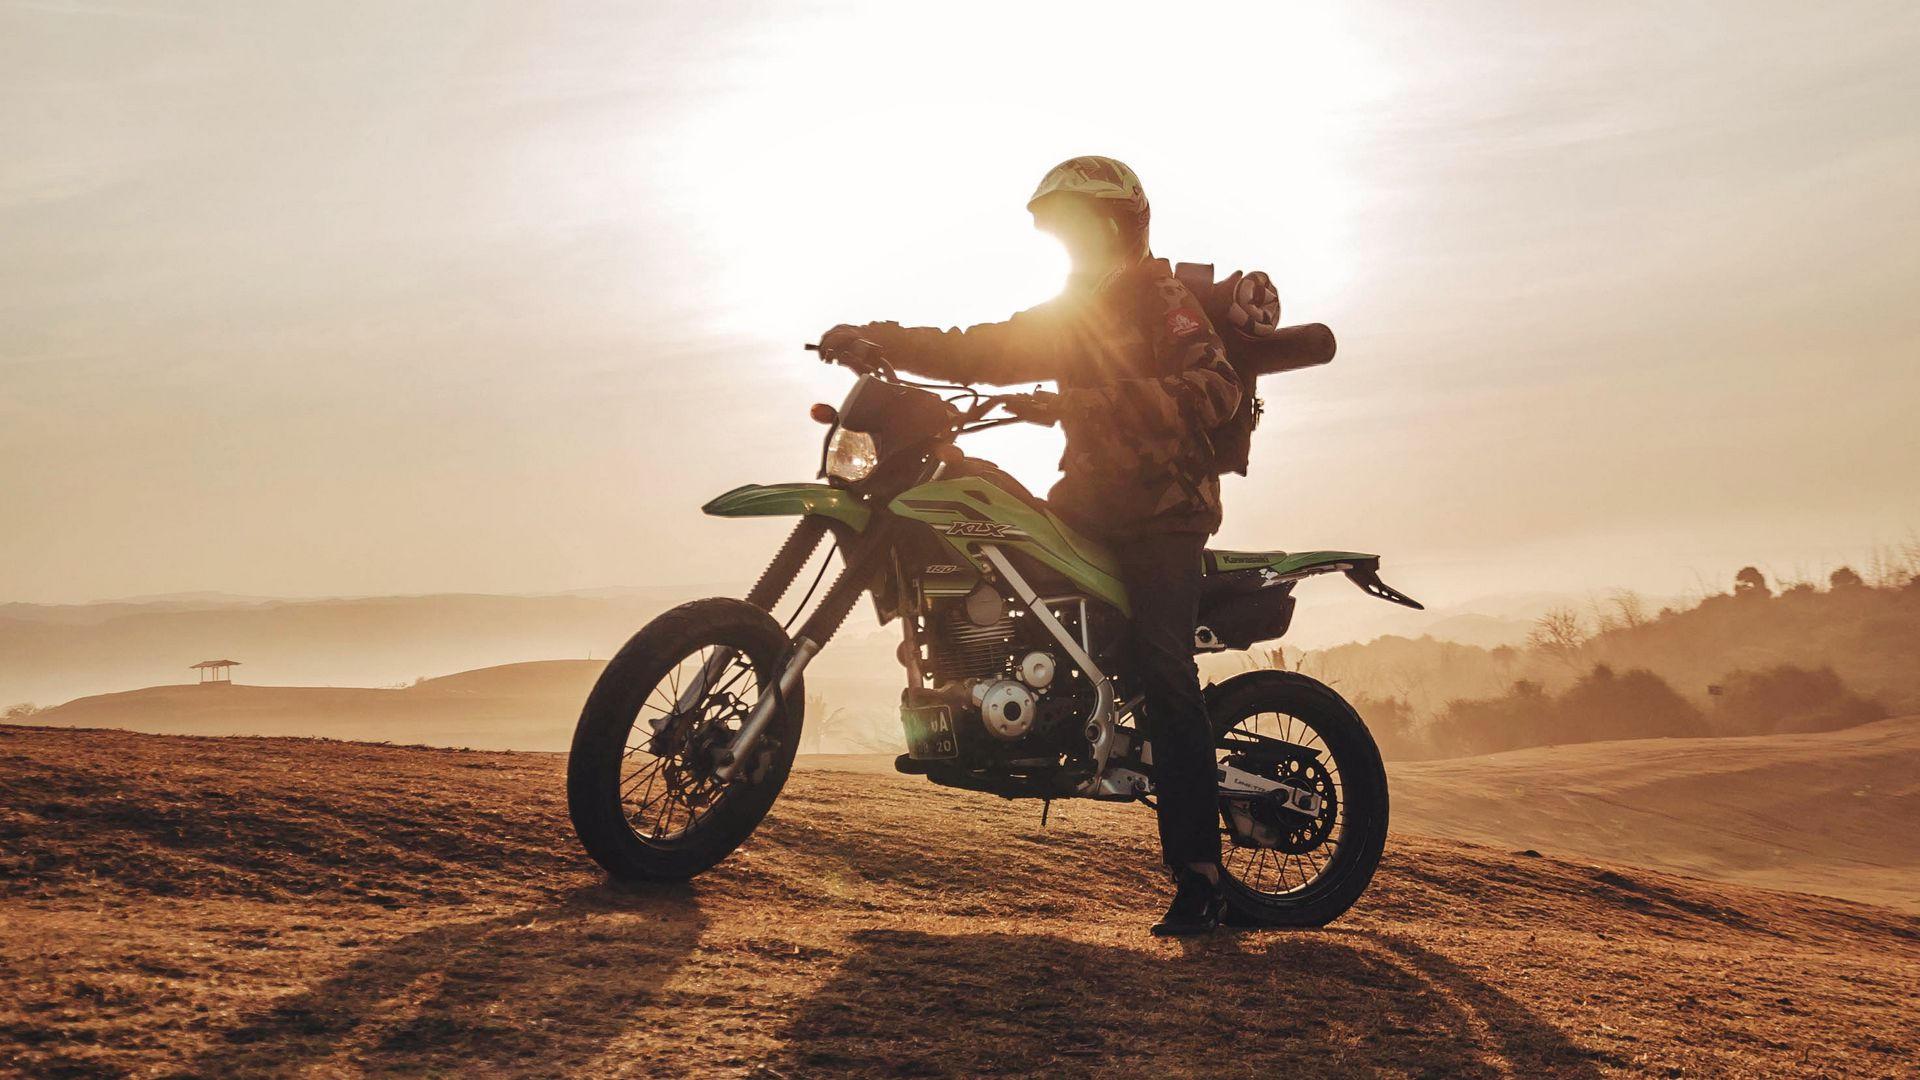 Motorcyclist, Motorcycle, Dawn Download Free HD Wallpapers